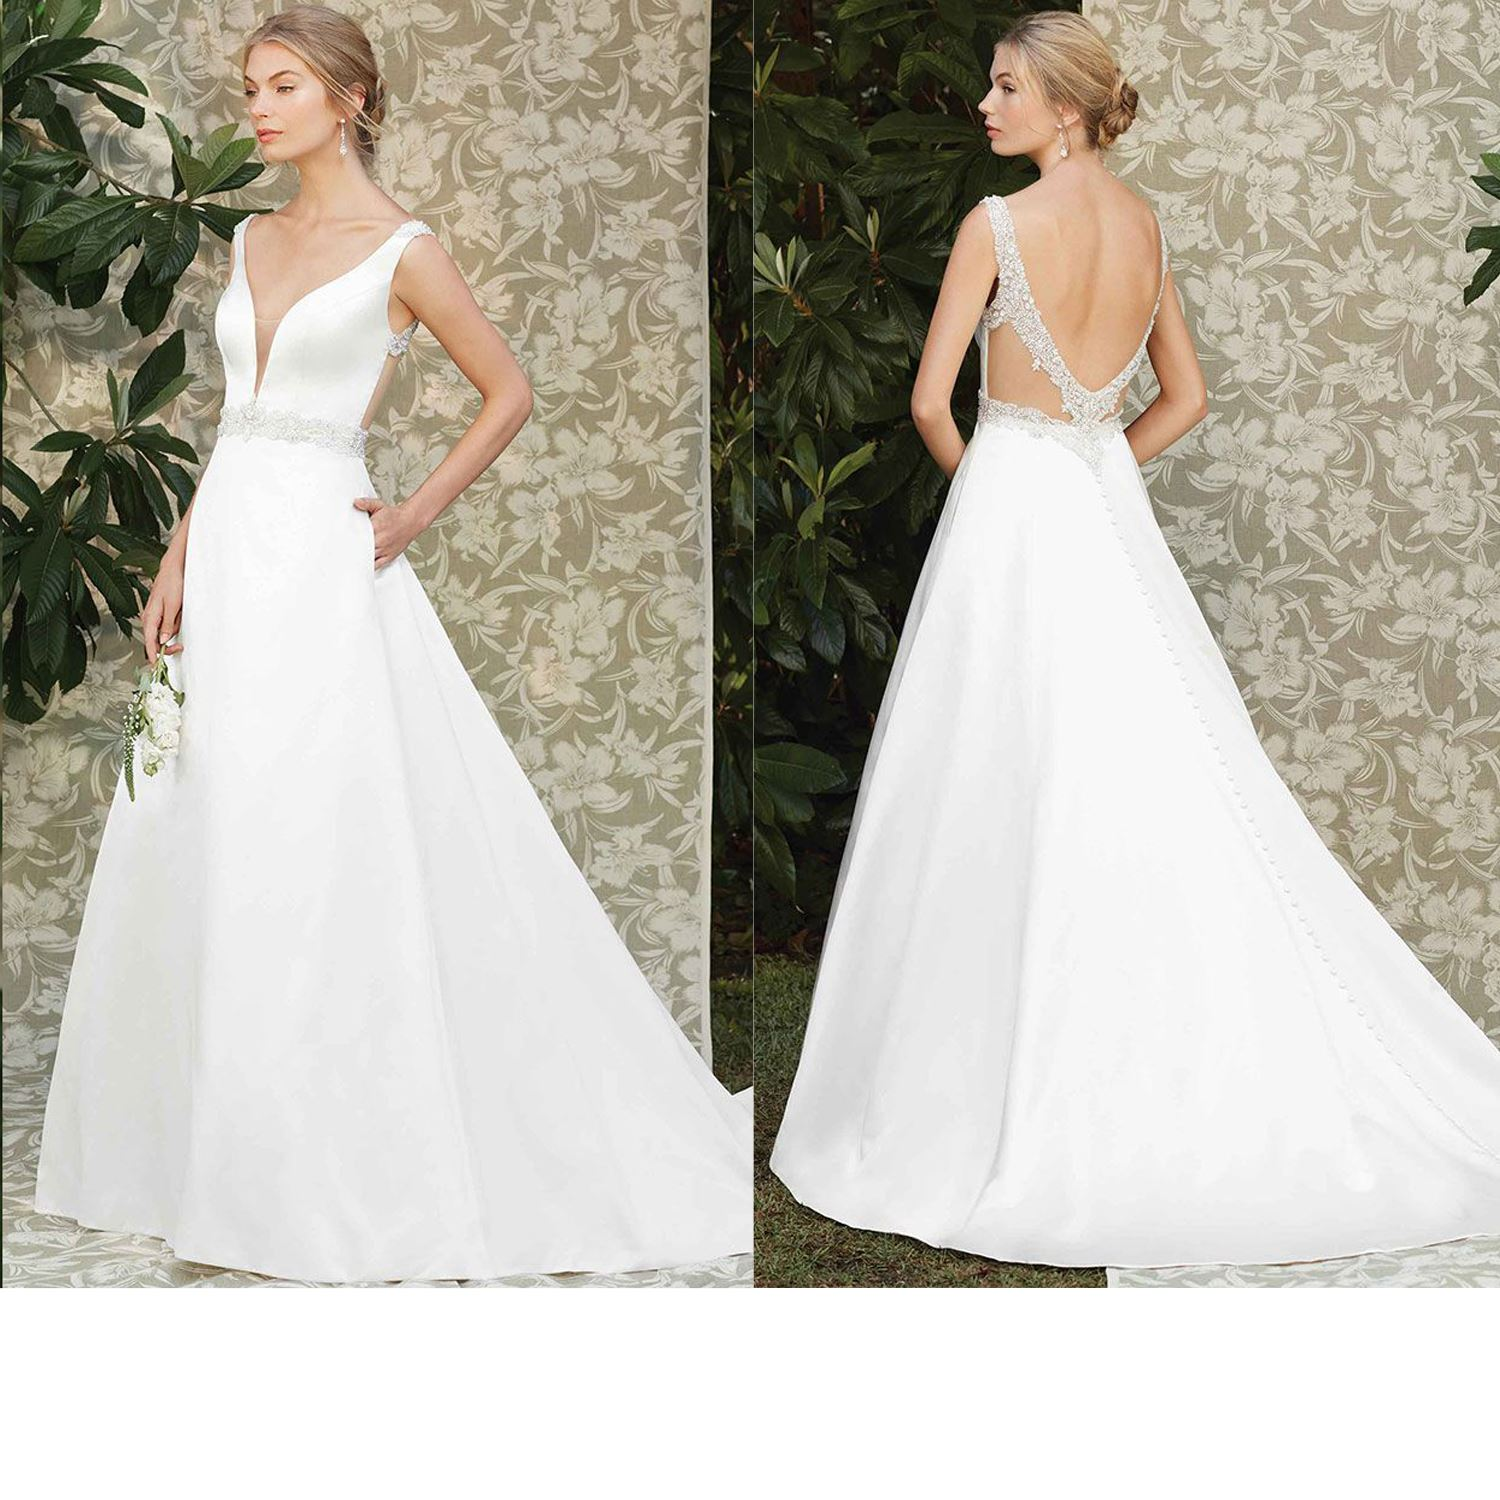 Charlotte - Size 12 - Ivory - Originally priced $1599 - Sample box price $999